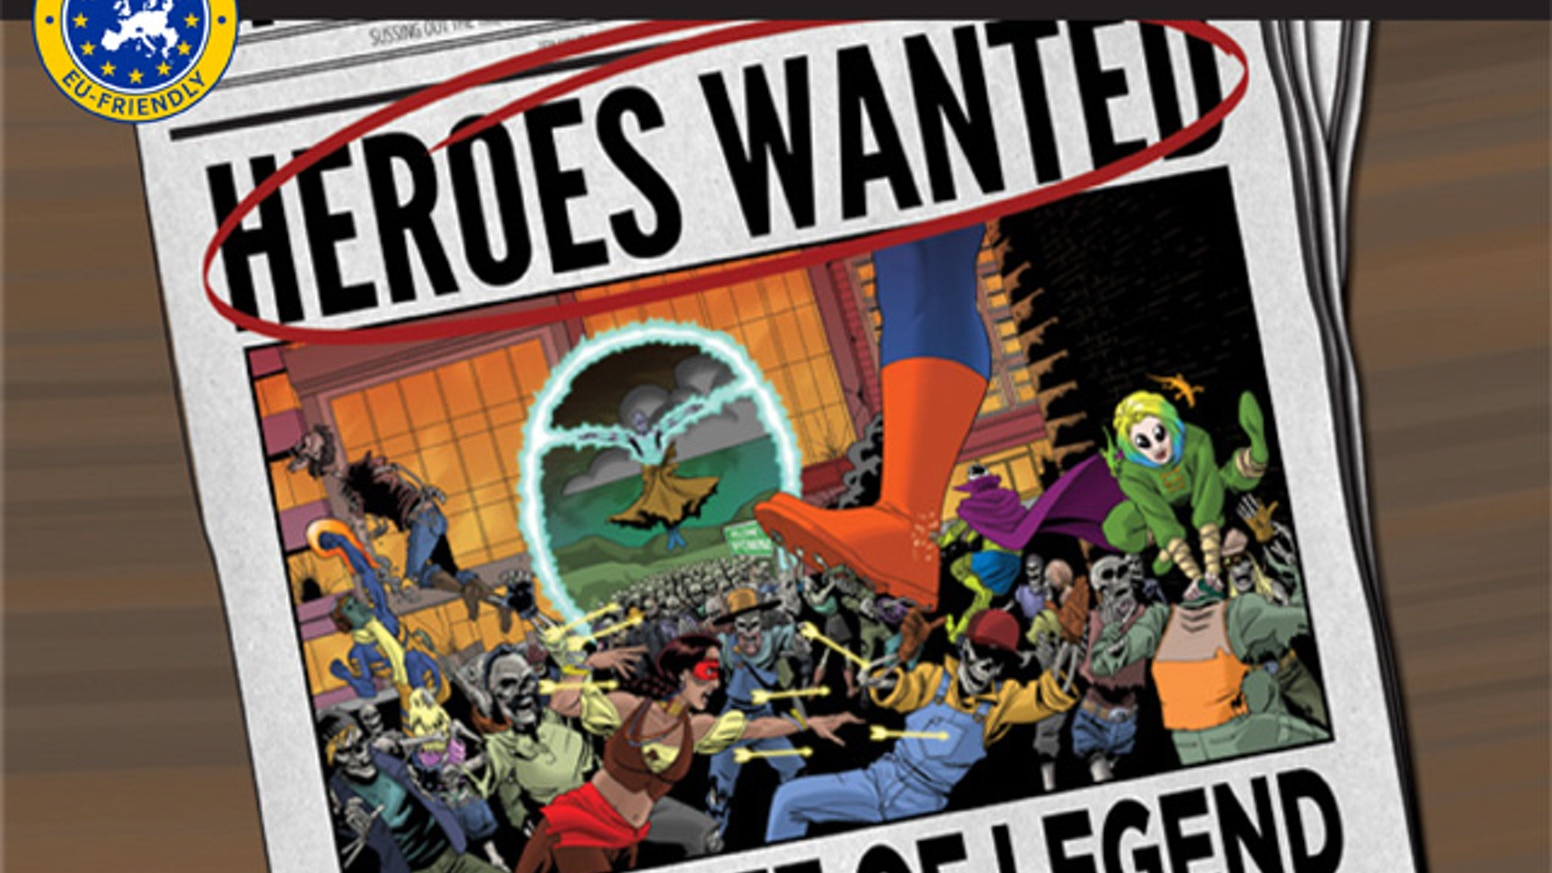 The first full expansion for Heroes Wanted, introducing Supernatural and Mythic heroes, new mechanics, and two new scenarios!